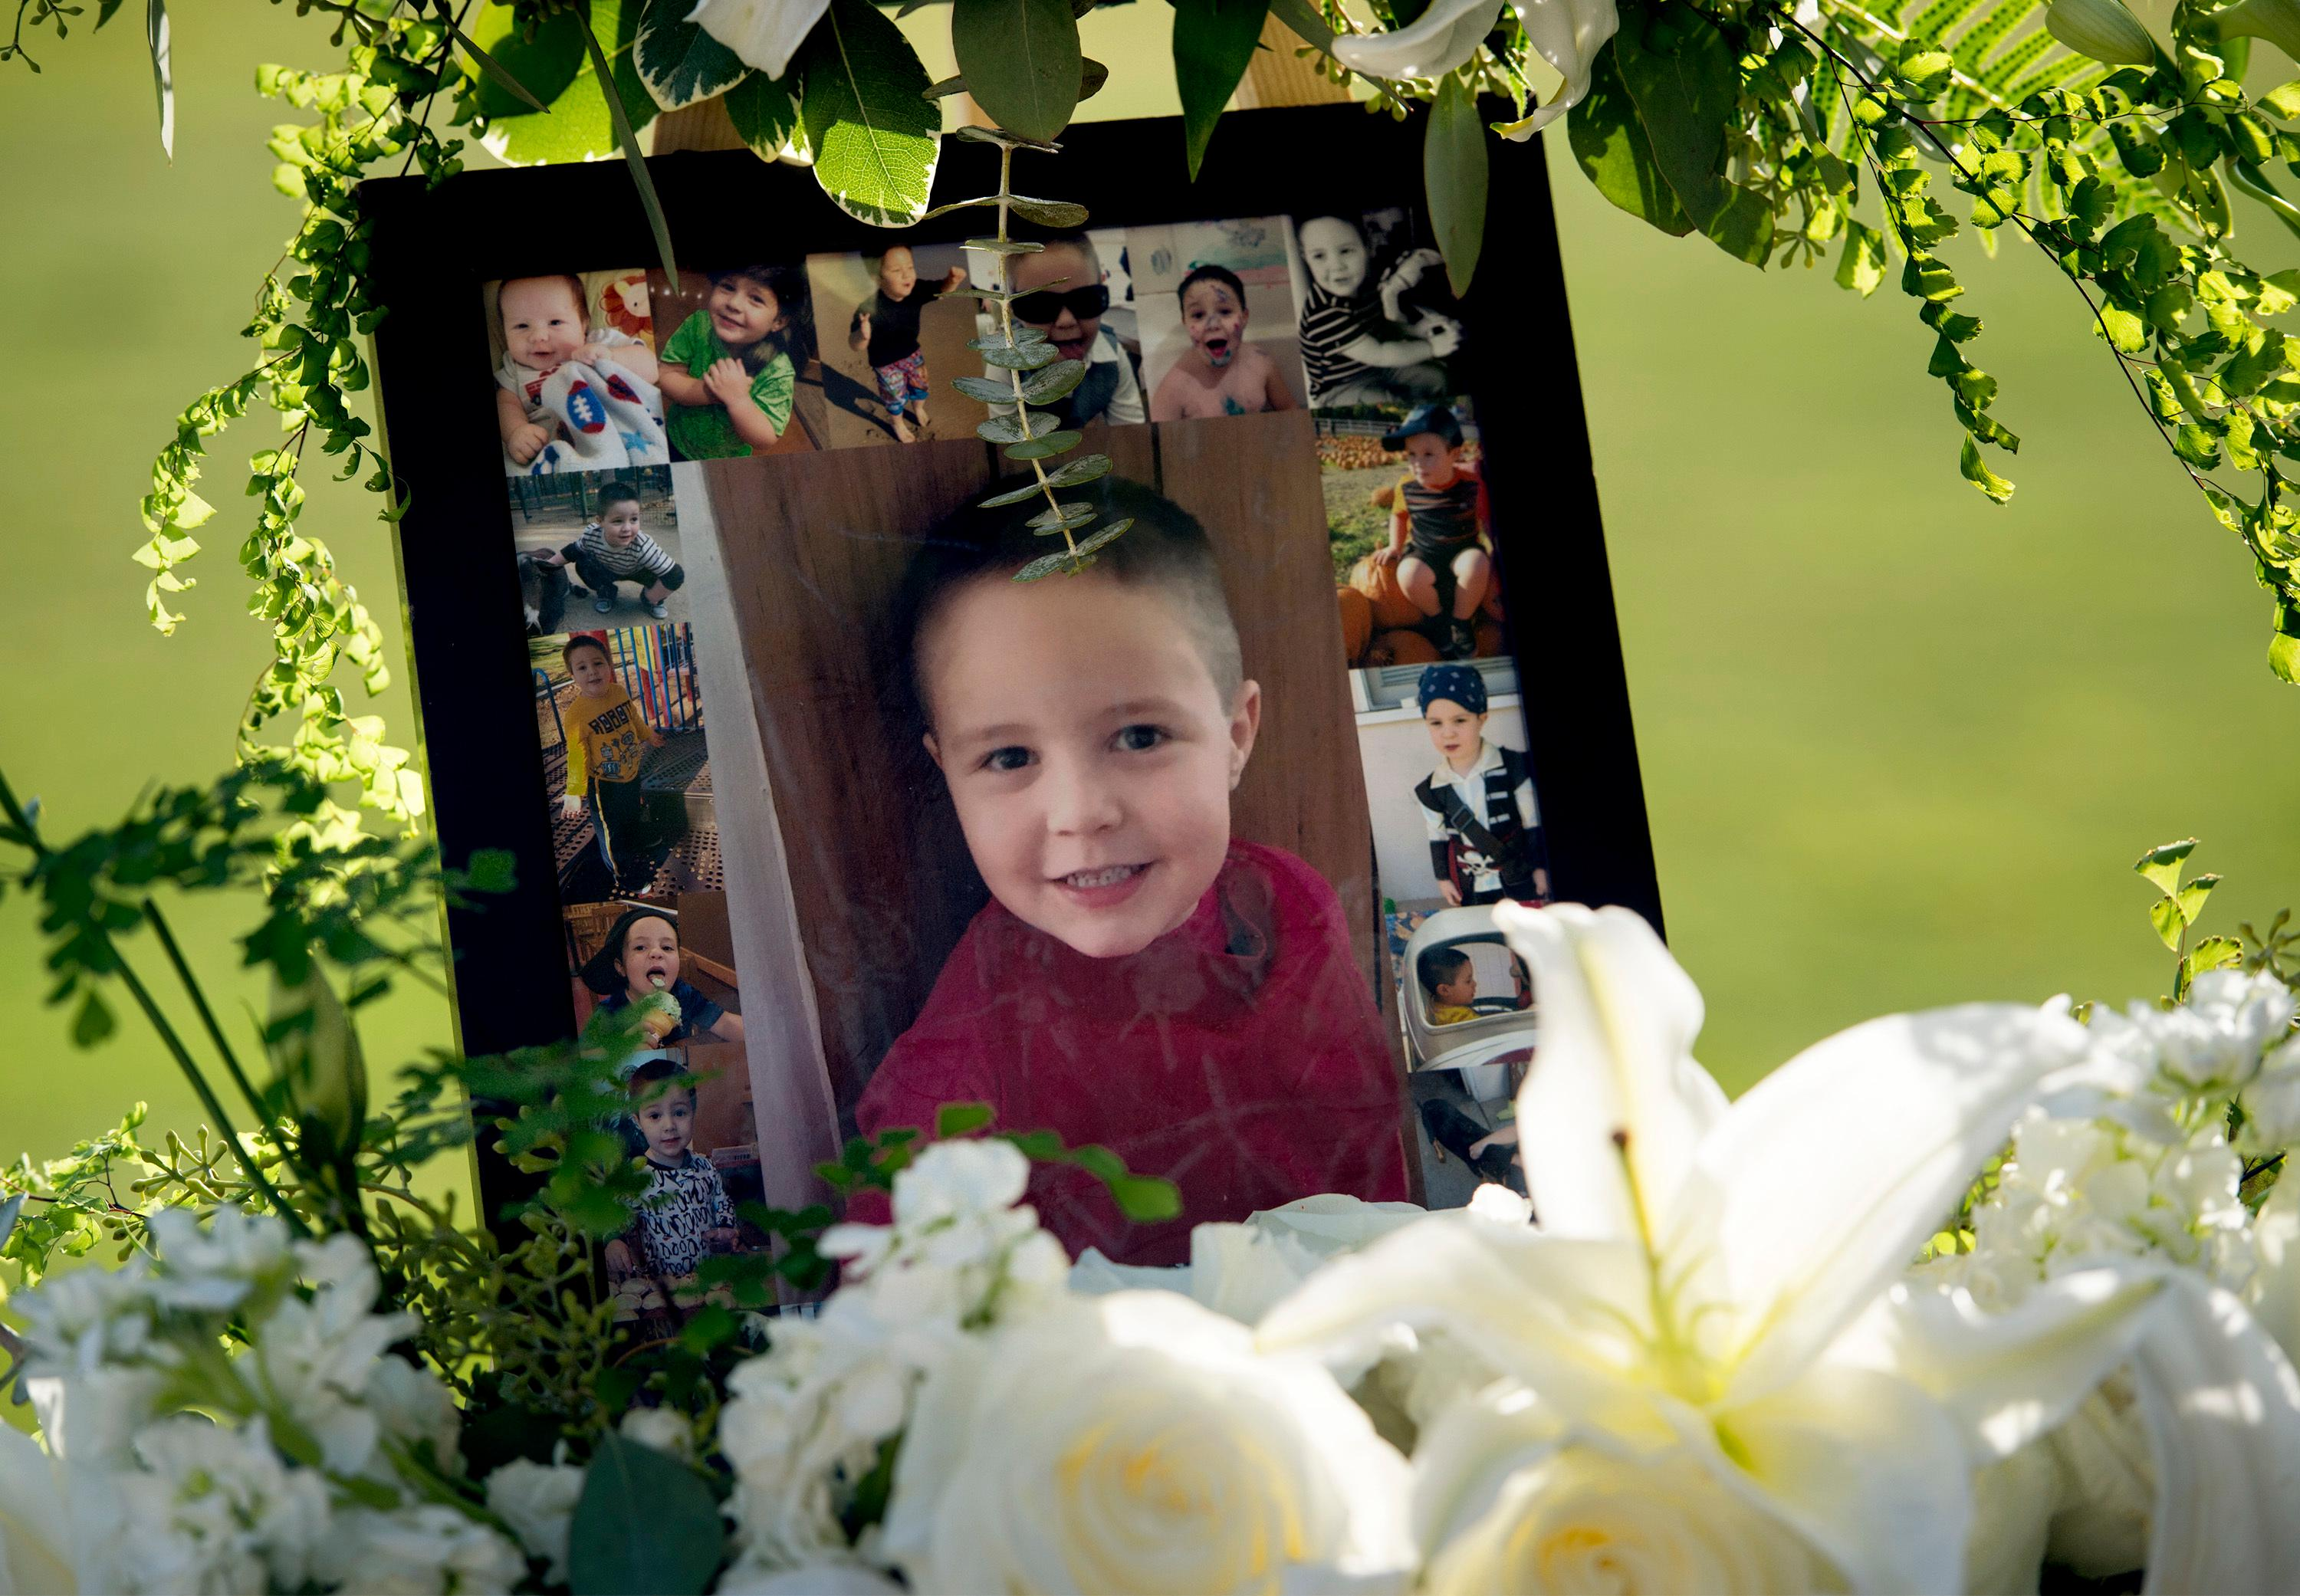 FILE - This July 19, 2017 file photo shows a portrait of five-year-old Aramazd Andressian Jr. at a memorial in his memory at the Los Angeles County Arboretum in Arcadia, Calif. Aramazd Andressian Sr. has pleaded guilty to killing his 5-year-old son. Andressian Sr. entered the plea to first-degree murder Tuesday, Aug. 1, 2017 in Los Angeles County Superior Court in Alhambra, Calif. He previously pleaded not guilty to a murder charge and was being held on $10 million bail. (Leo Jarzomb /Los Angeles Daily News via AP, file)